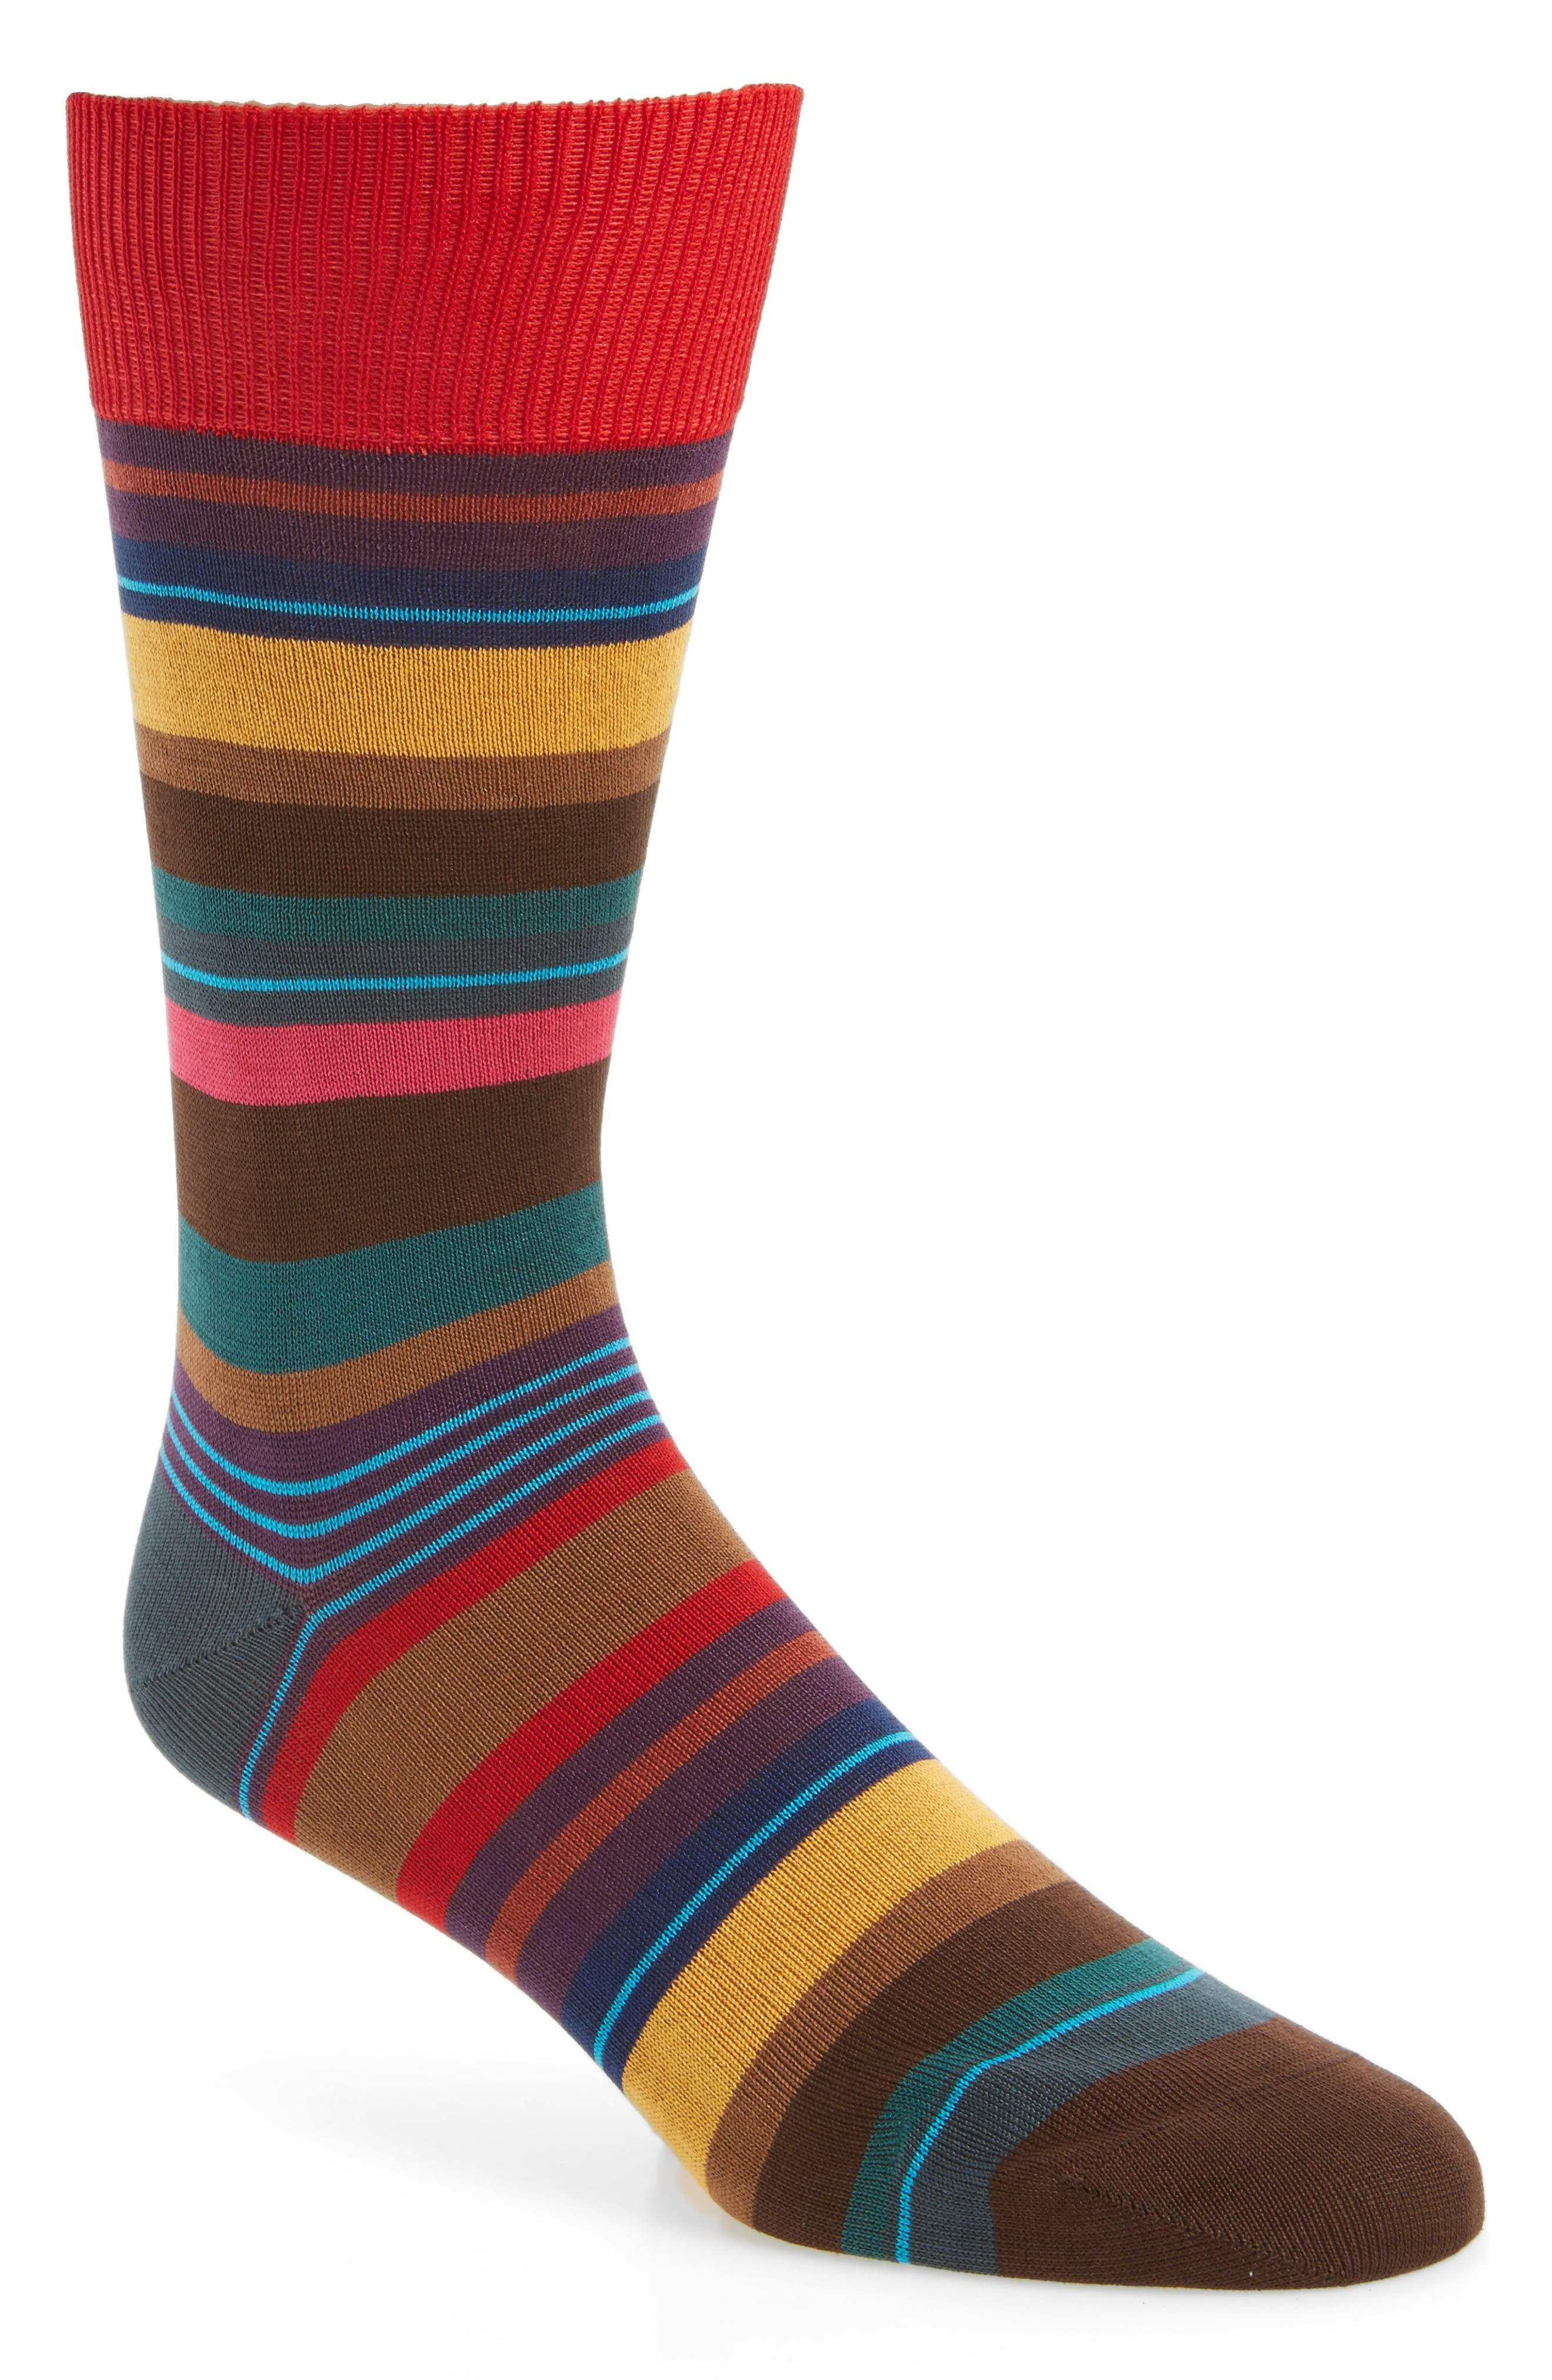 Paul Smith Halentoe Stripe Socks